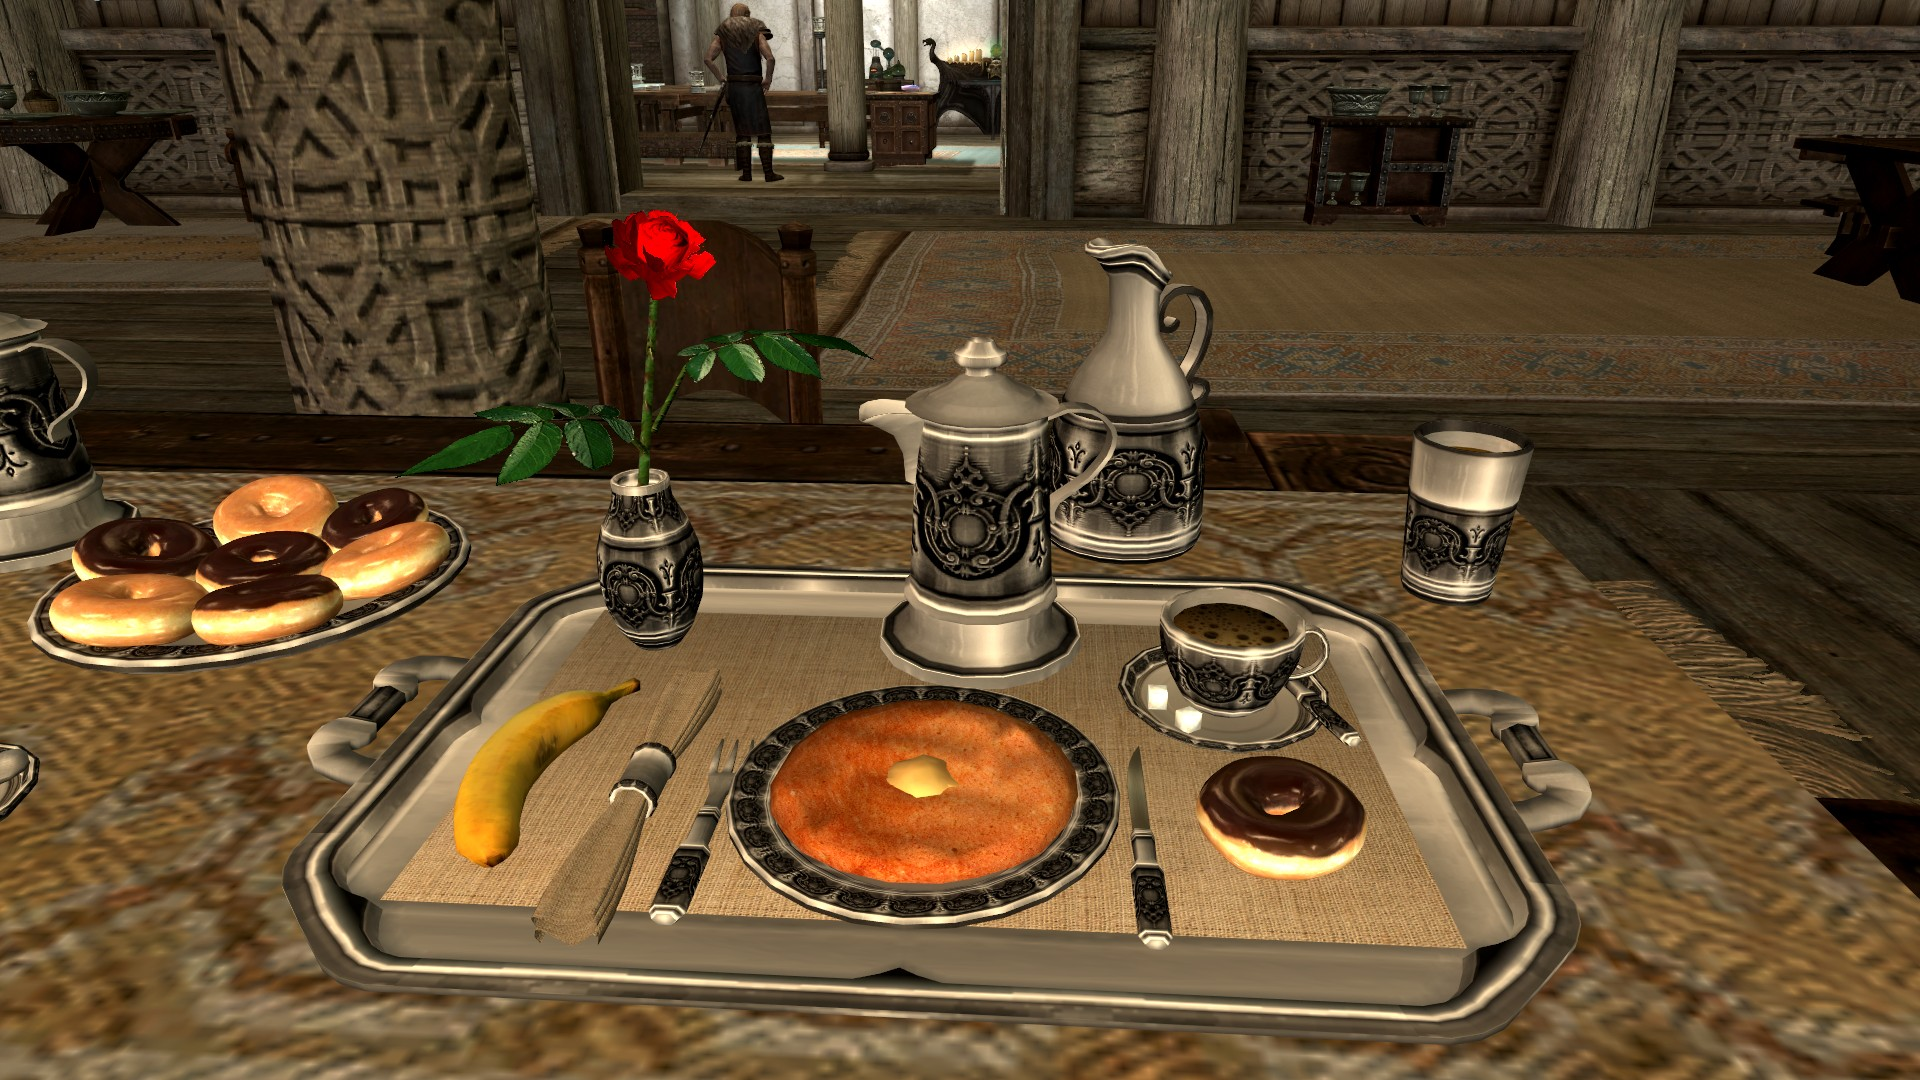 Static Dishes And Food Resource At Skyrim Nexus Mods And Community